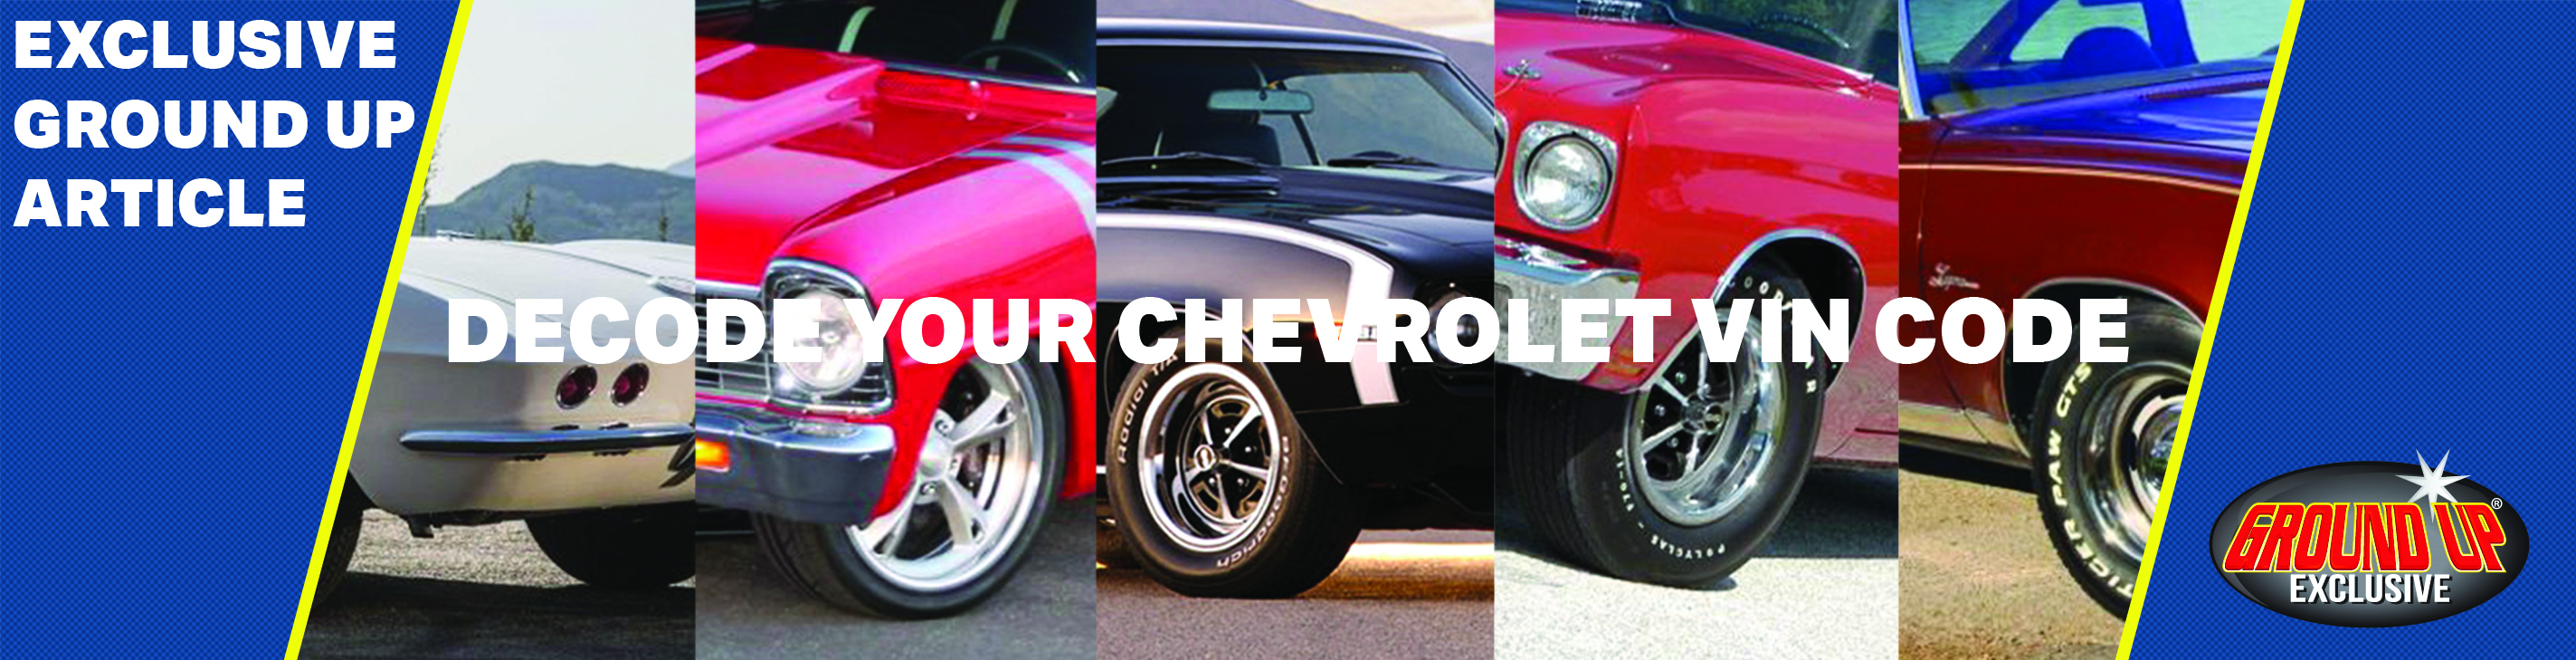 Decoding Your Chevelle's Vin Code